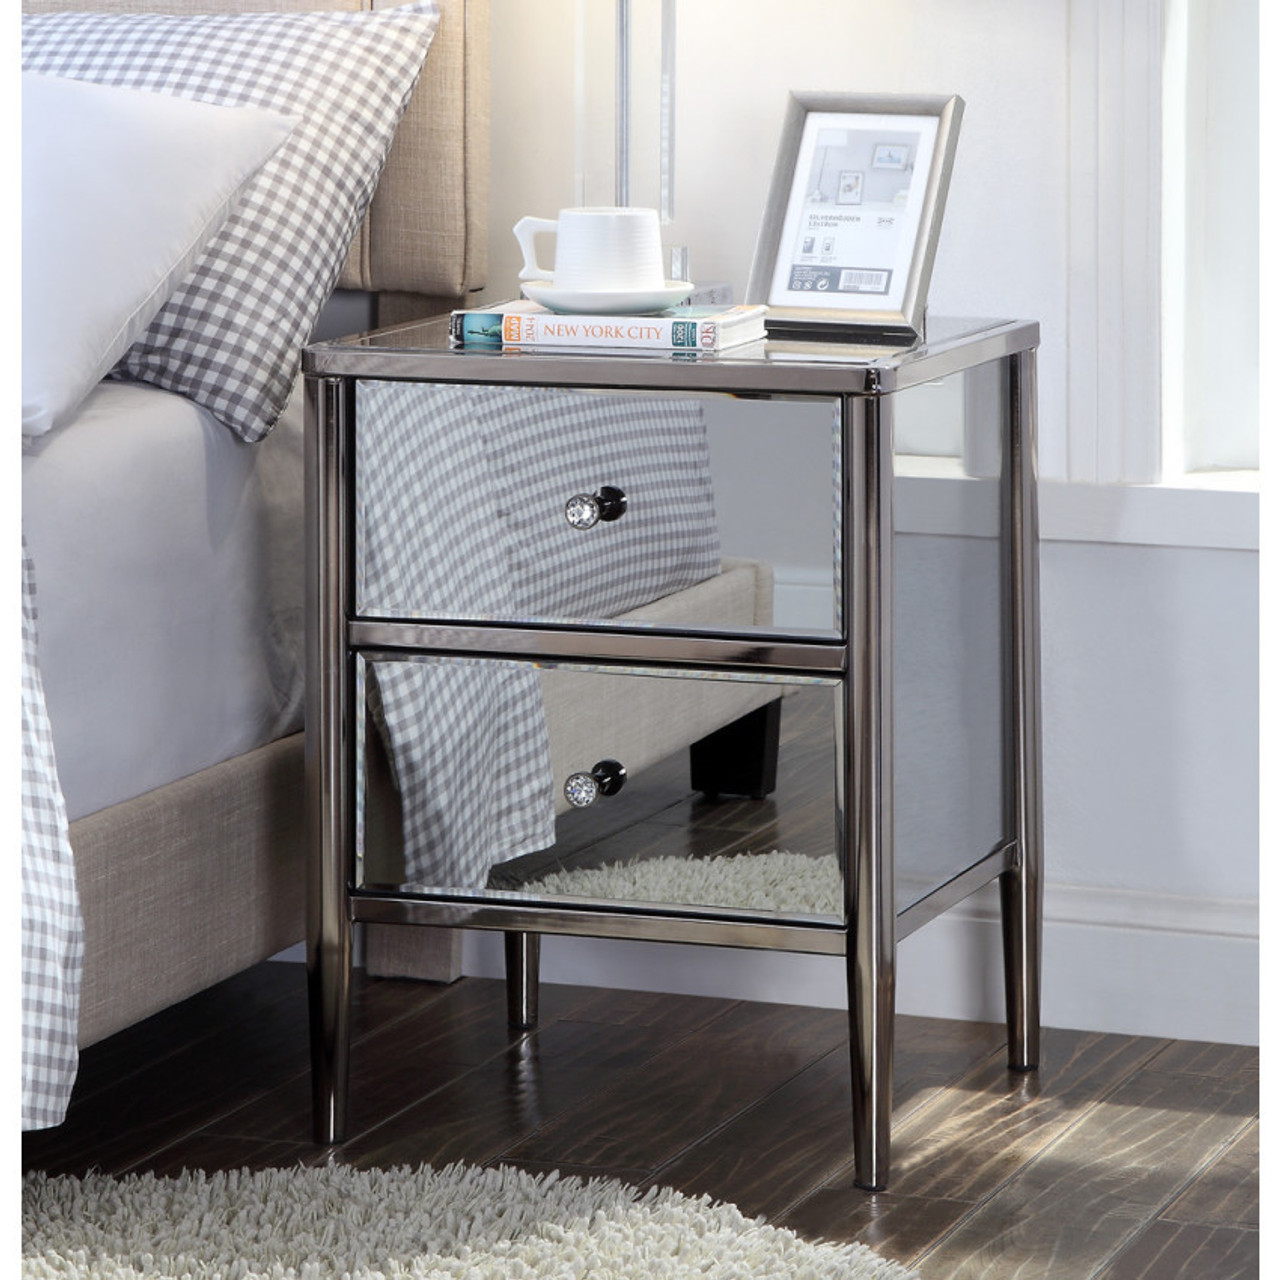 San Pedro 2 Drawer Smoke Mirror Bedside Table Black Grey Nickel Plated My Furniture Store And Bedding Super Australia